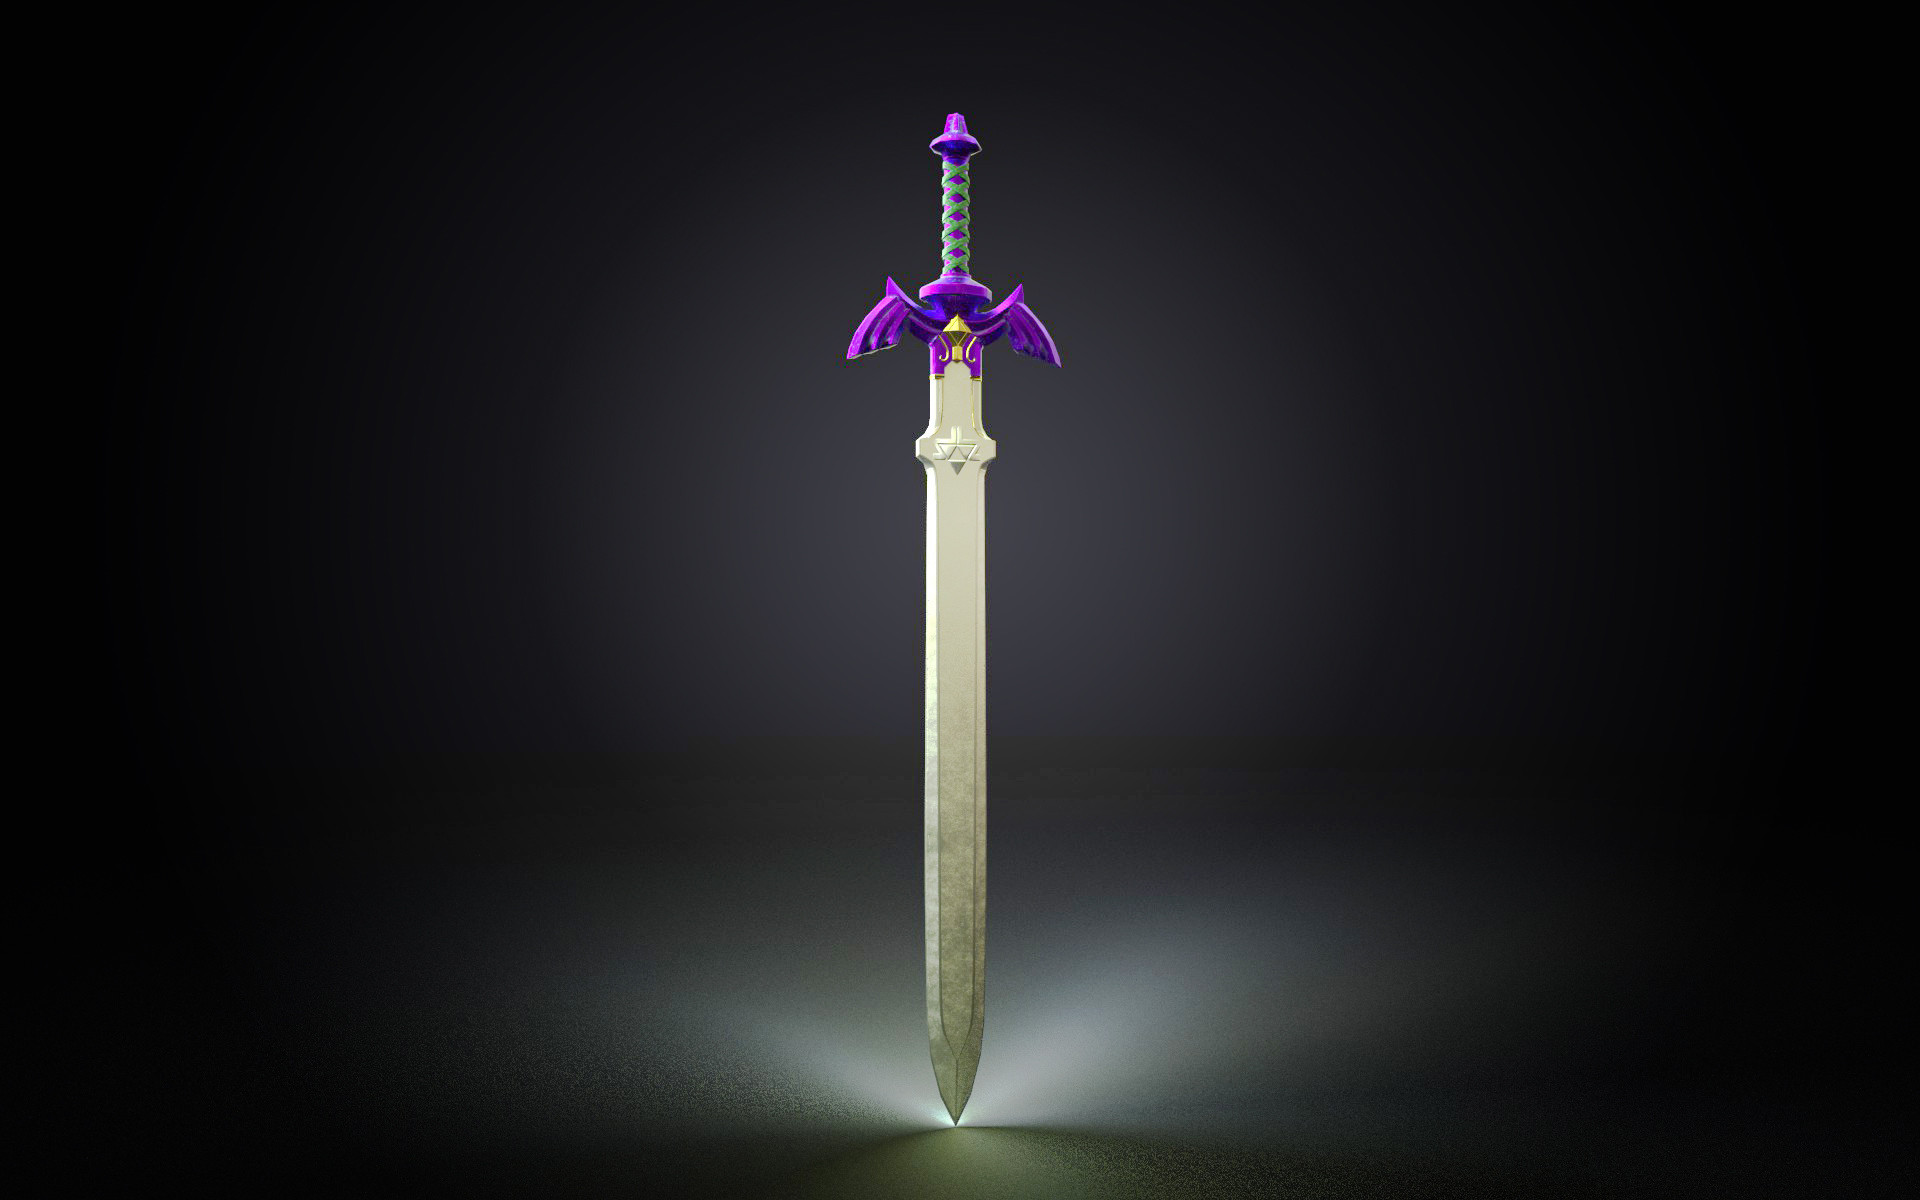 The Master Sword !!